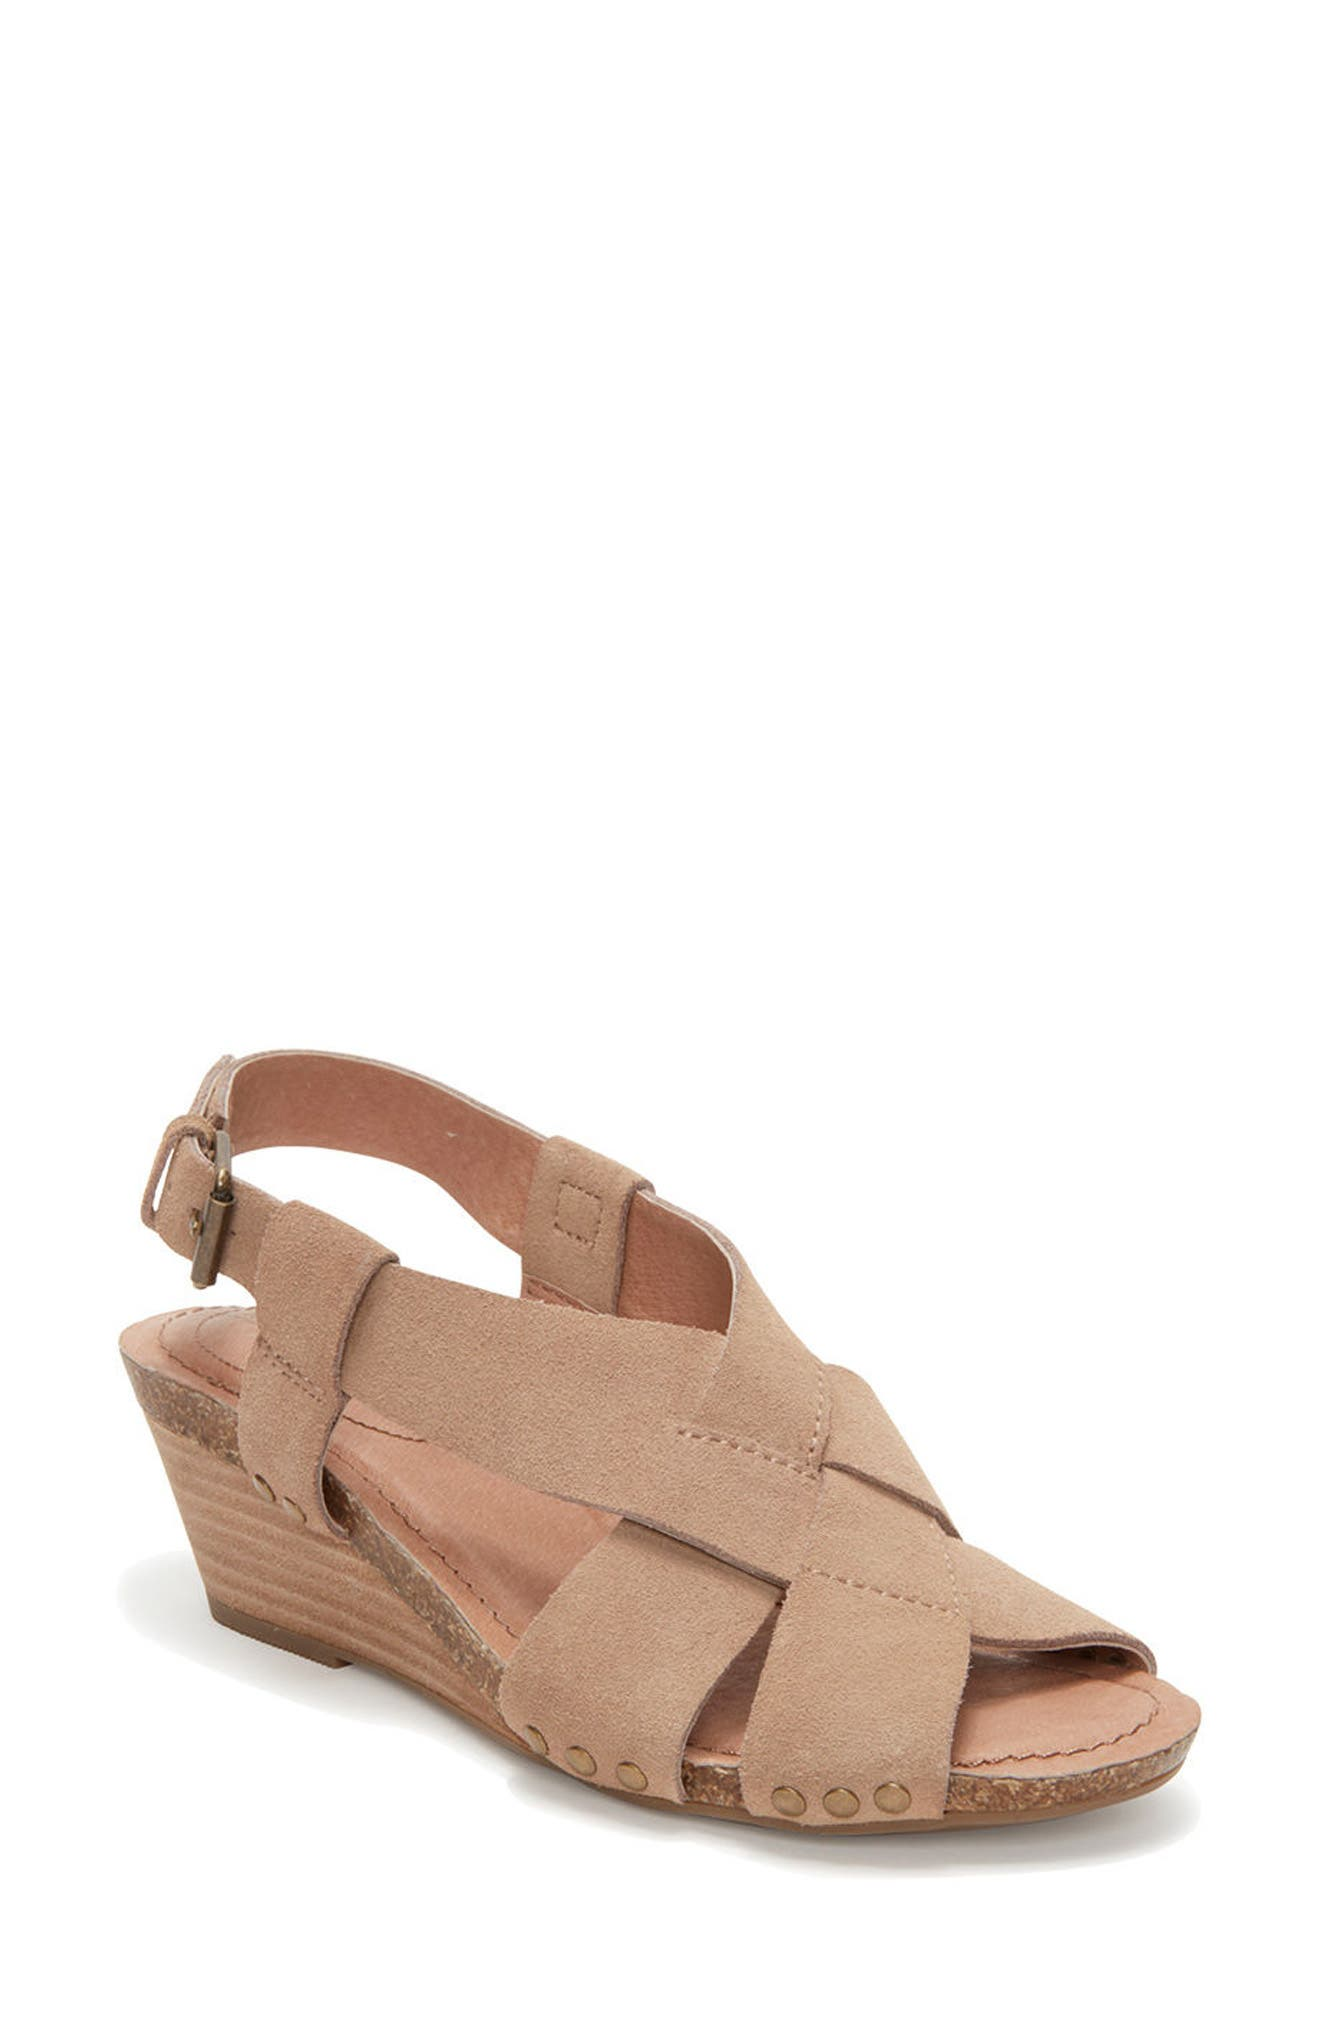 Adam Tucker Tarin Wedge Sandal,                         Main,                         color, Rosewood Suede